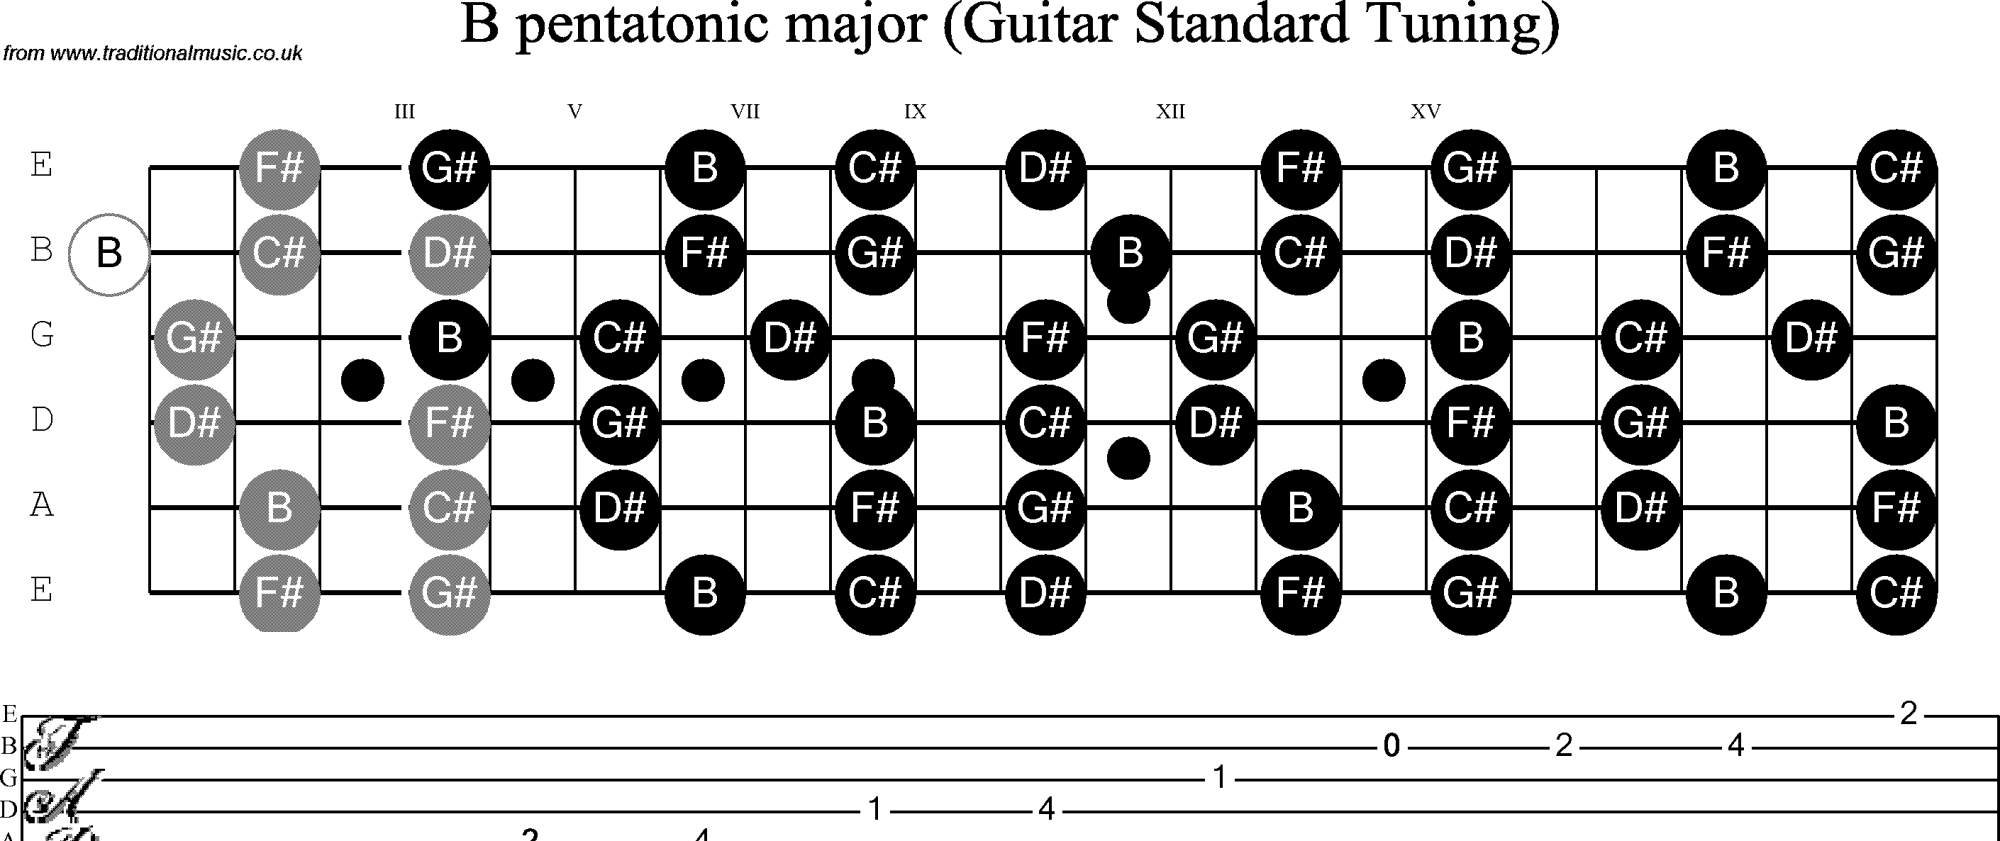 hight resolution of scale stave and neck diagram for guitar b pentatonic